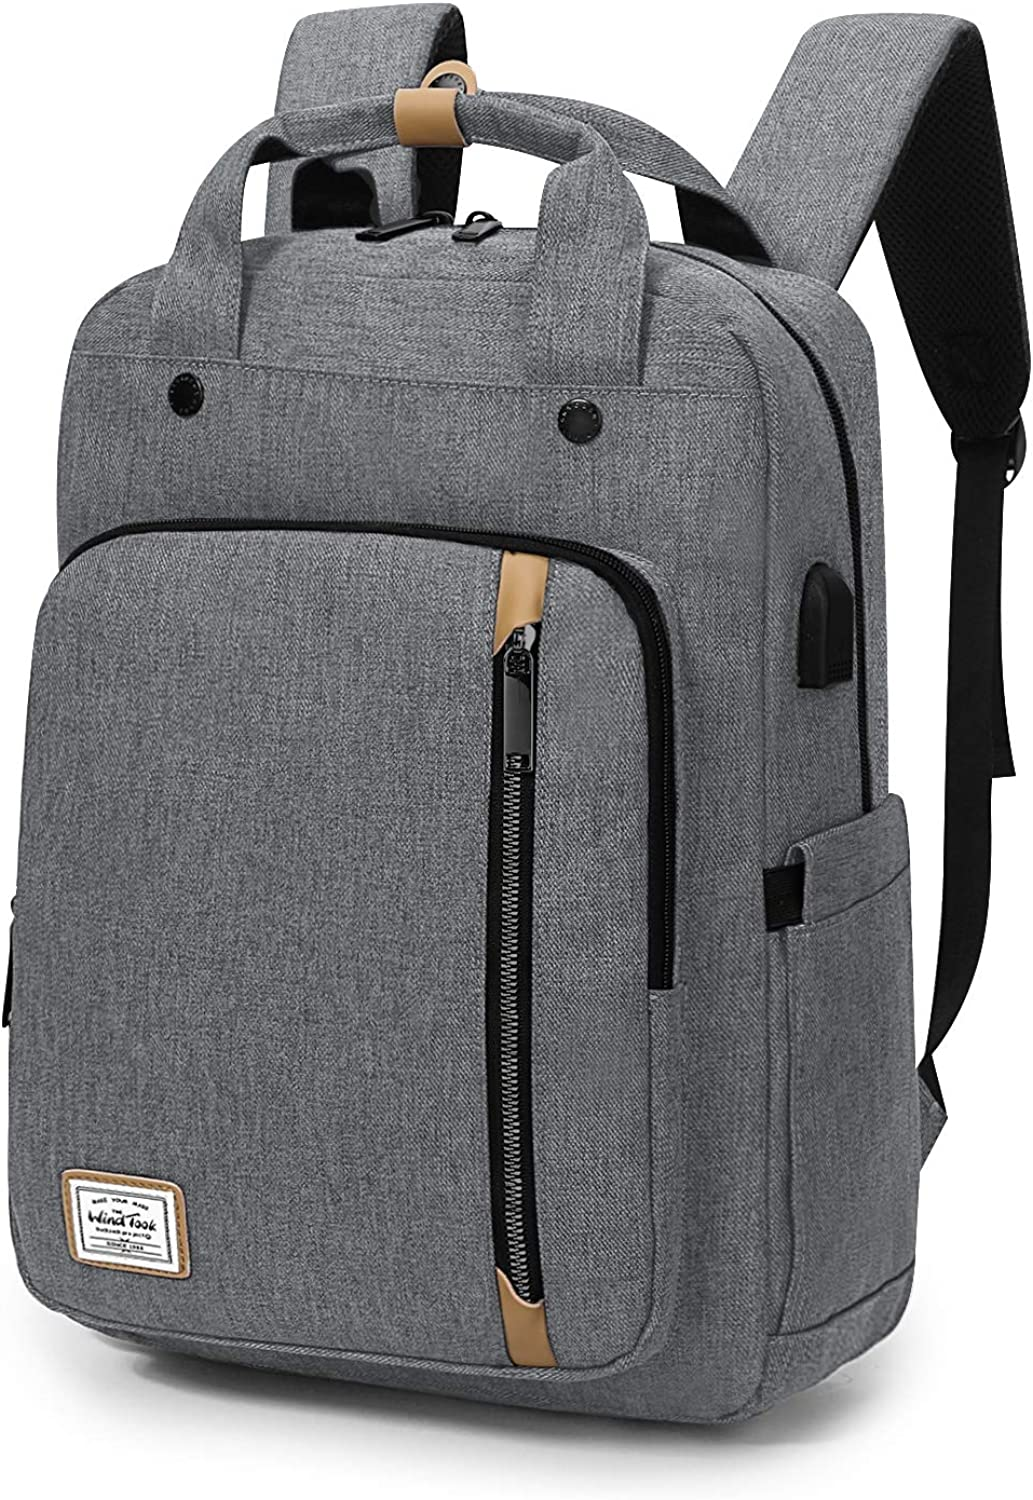 WindTook 15.6 Laptop Backpack for Women and Men Travel School College Daypack